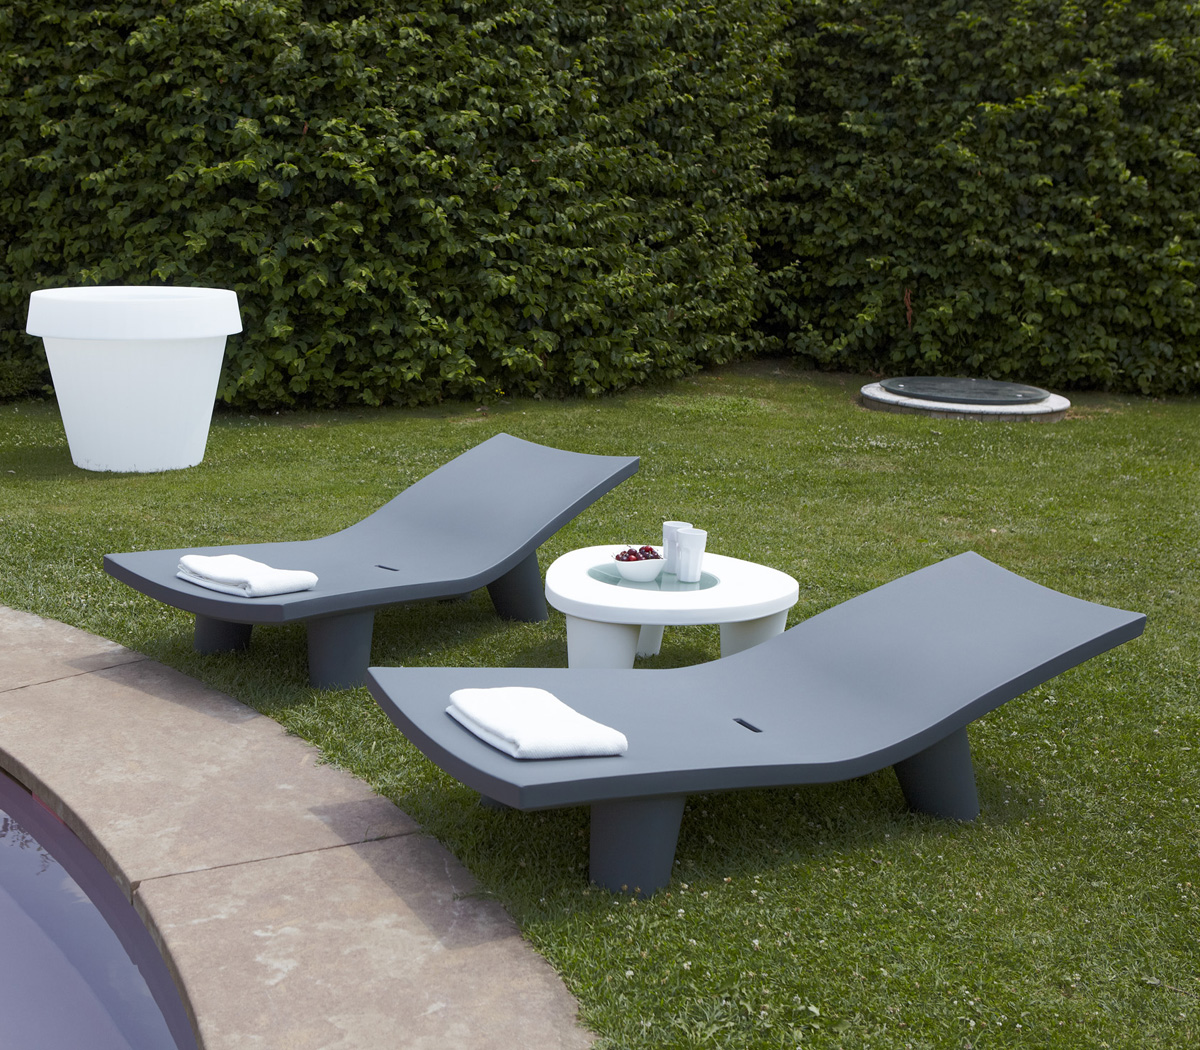 Low Lita Lounge lounger from Slide